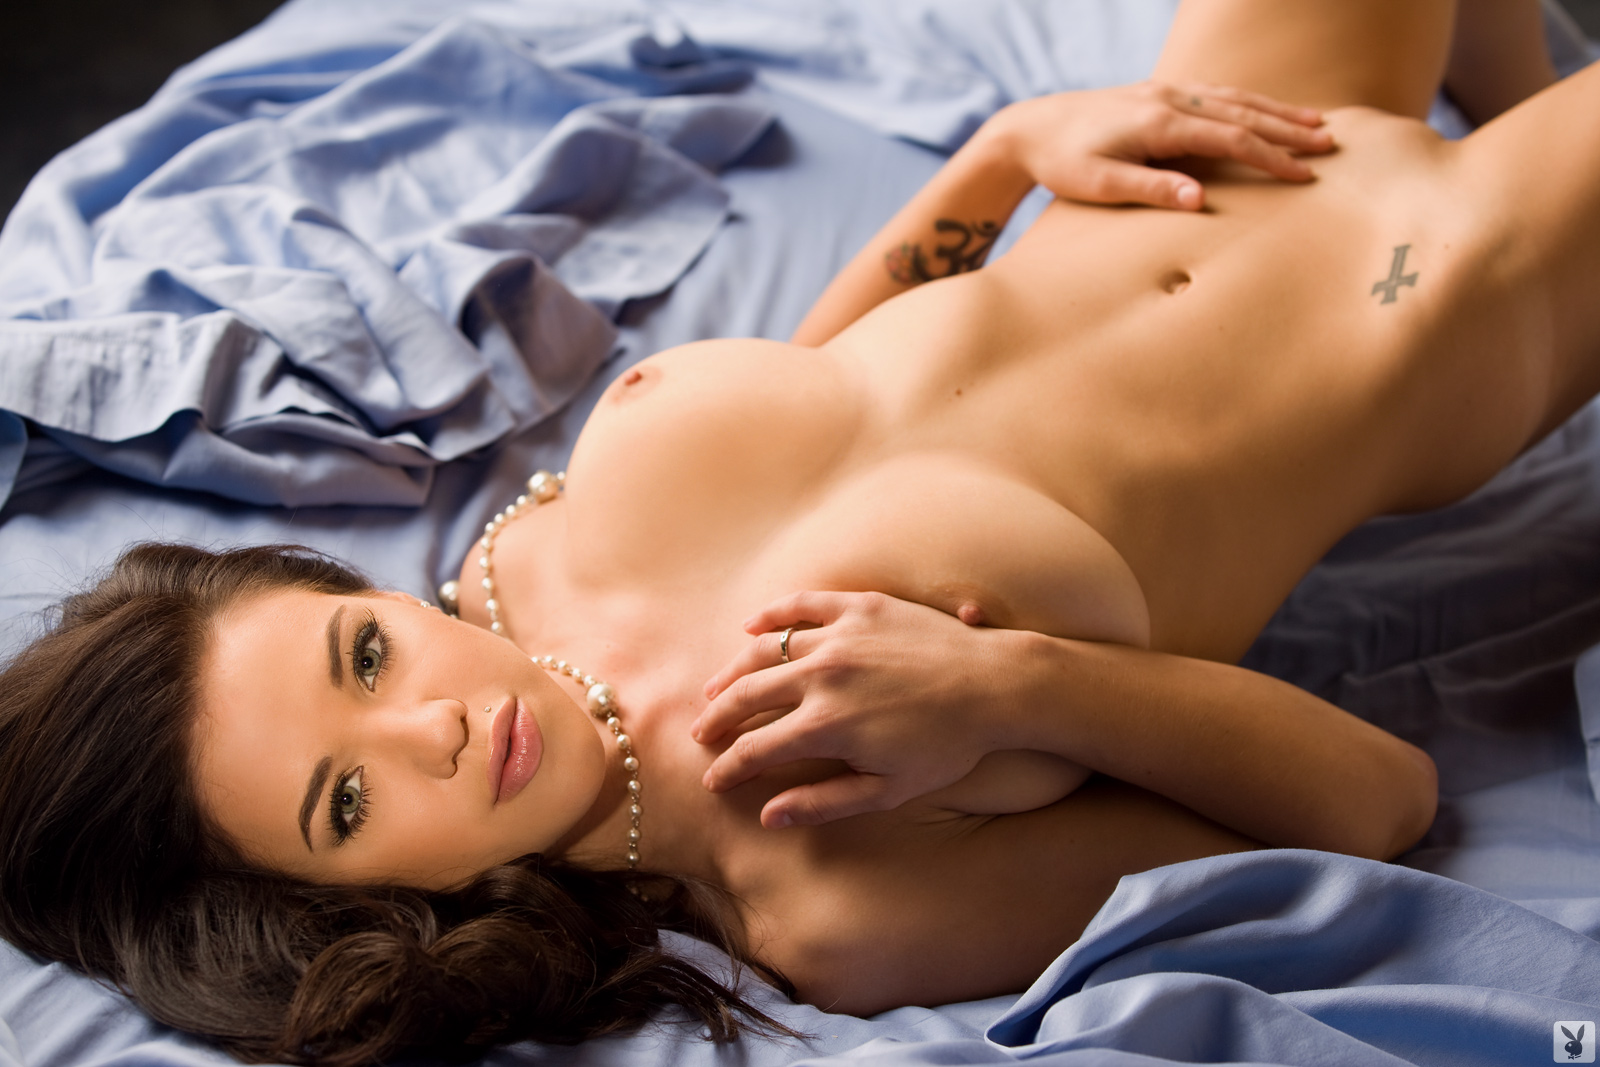 Sorry, playmate tess taylor phrase simply